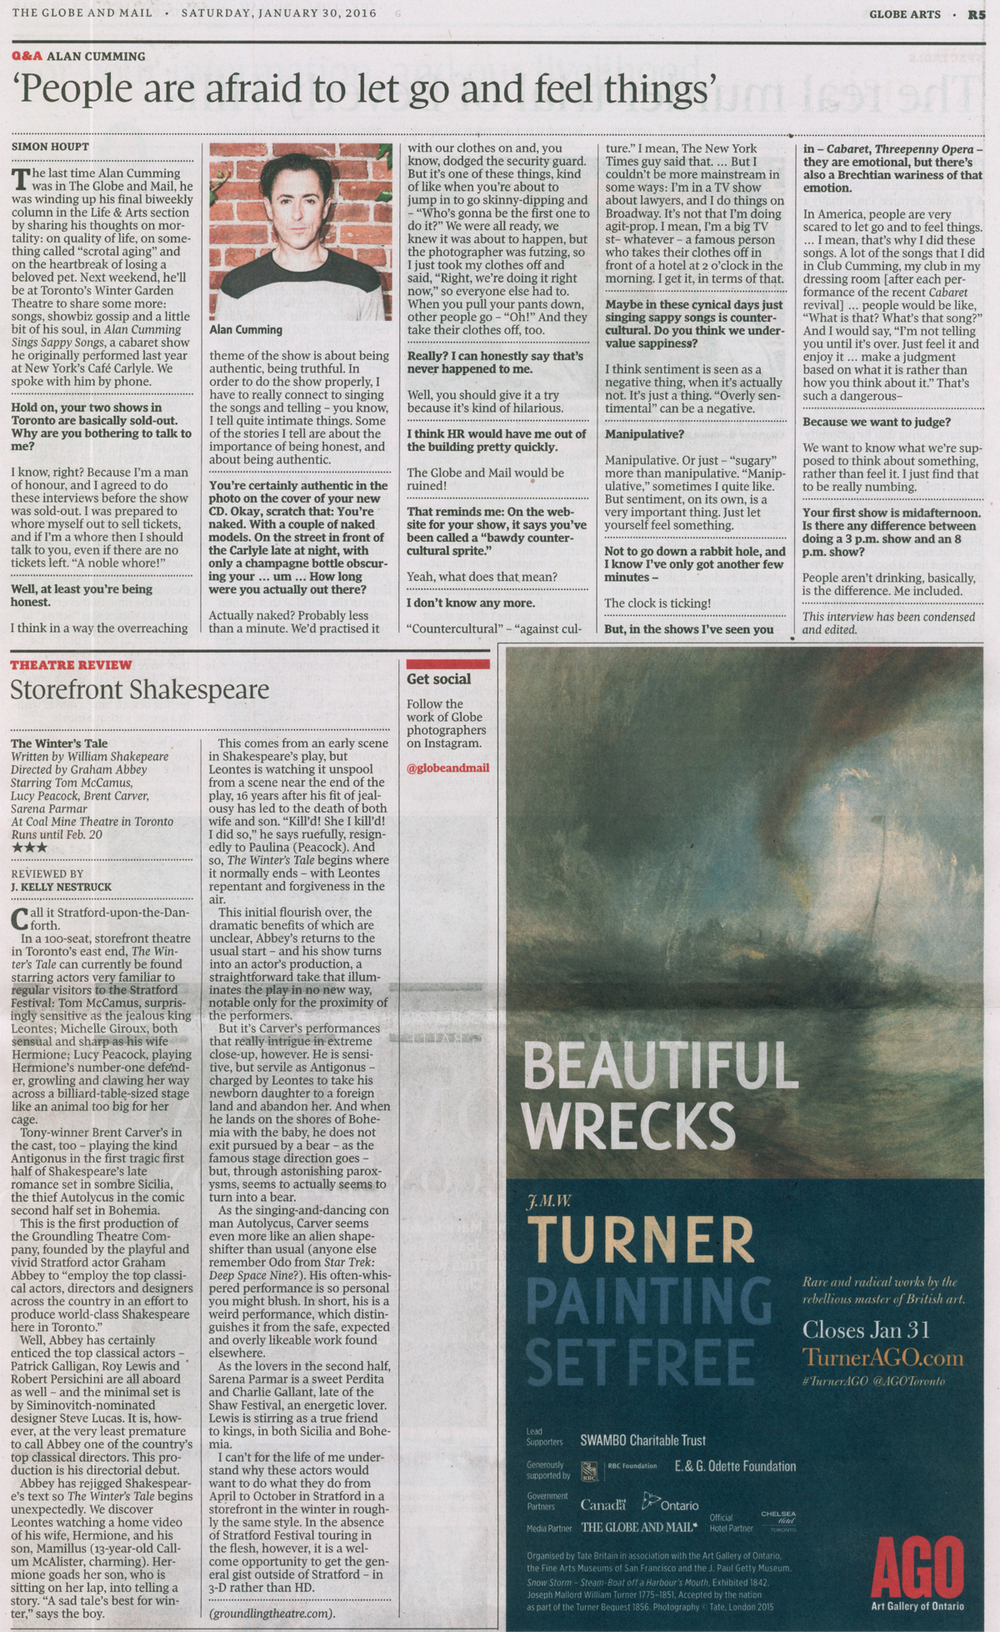 16.01.30 - The Globe and Mail - THE WINTER'S TALE.jpg